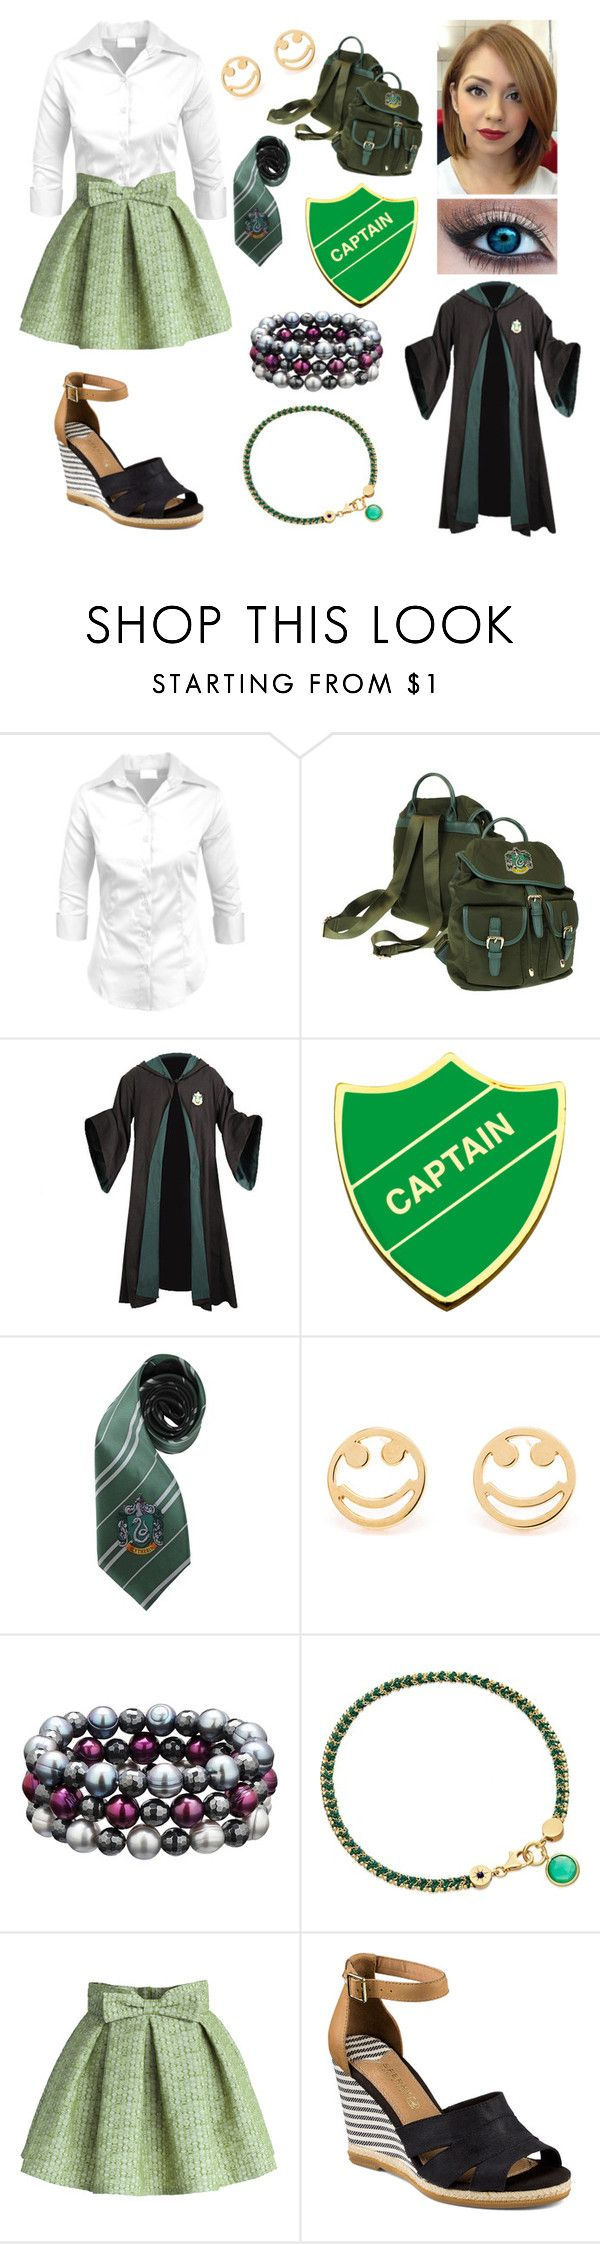 """Emily at Hogwarts"" by swimchick37 ❤ liked on Polyvore featuring Elope, Rosa de la Cruz, Honora, Astley Clarke, Chicwish and Sperry"